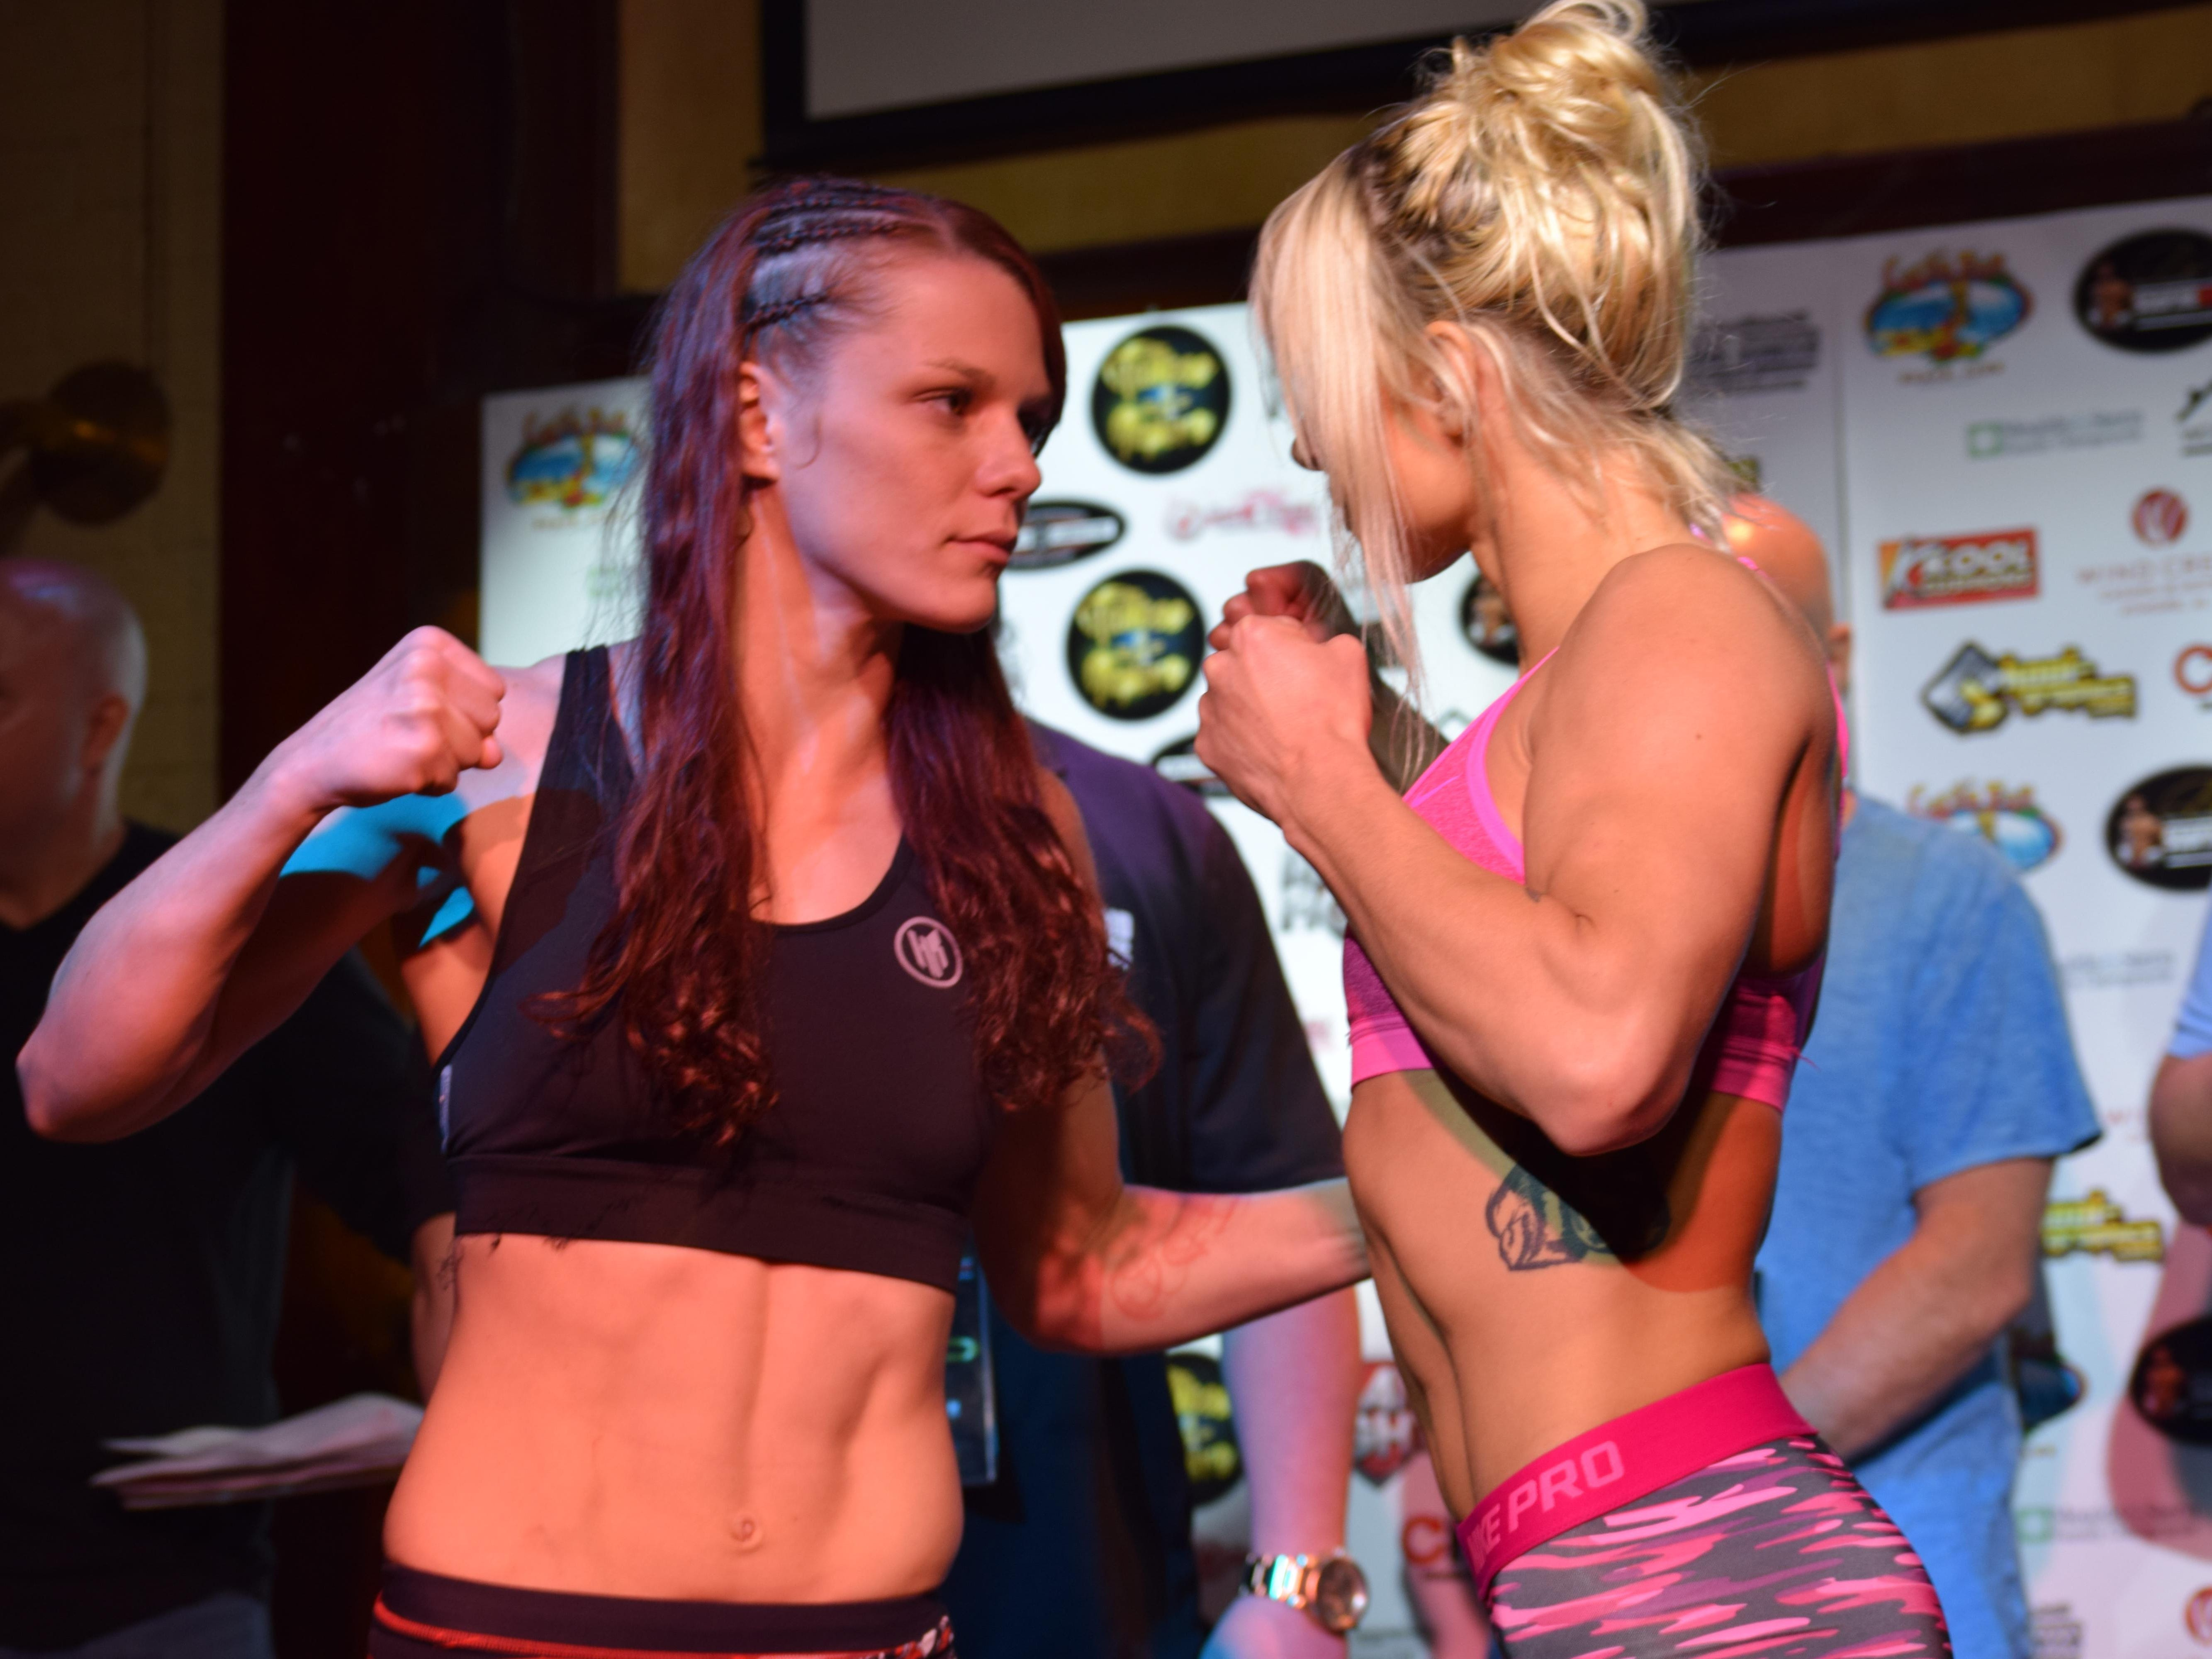 Gillian Robertson (left) and Hannah Goldy face off at Thursday's weigh-in at Seville Quarter for their fight Friday night at Island Fights 37 at Pensacola Bay Center.